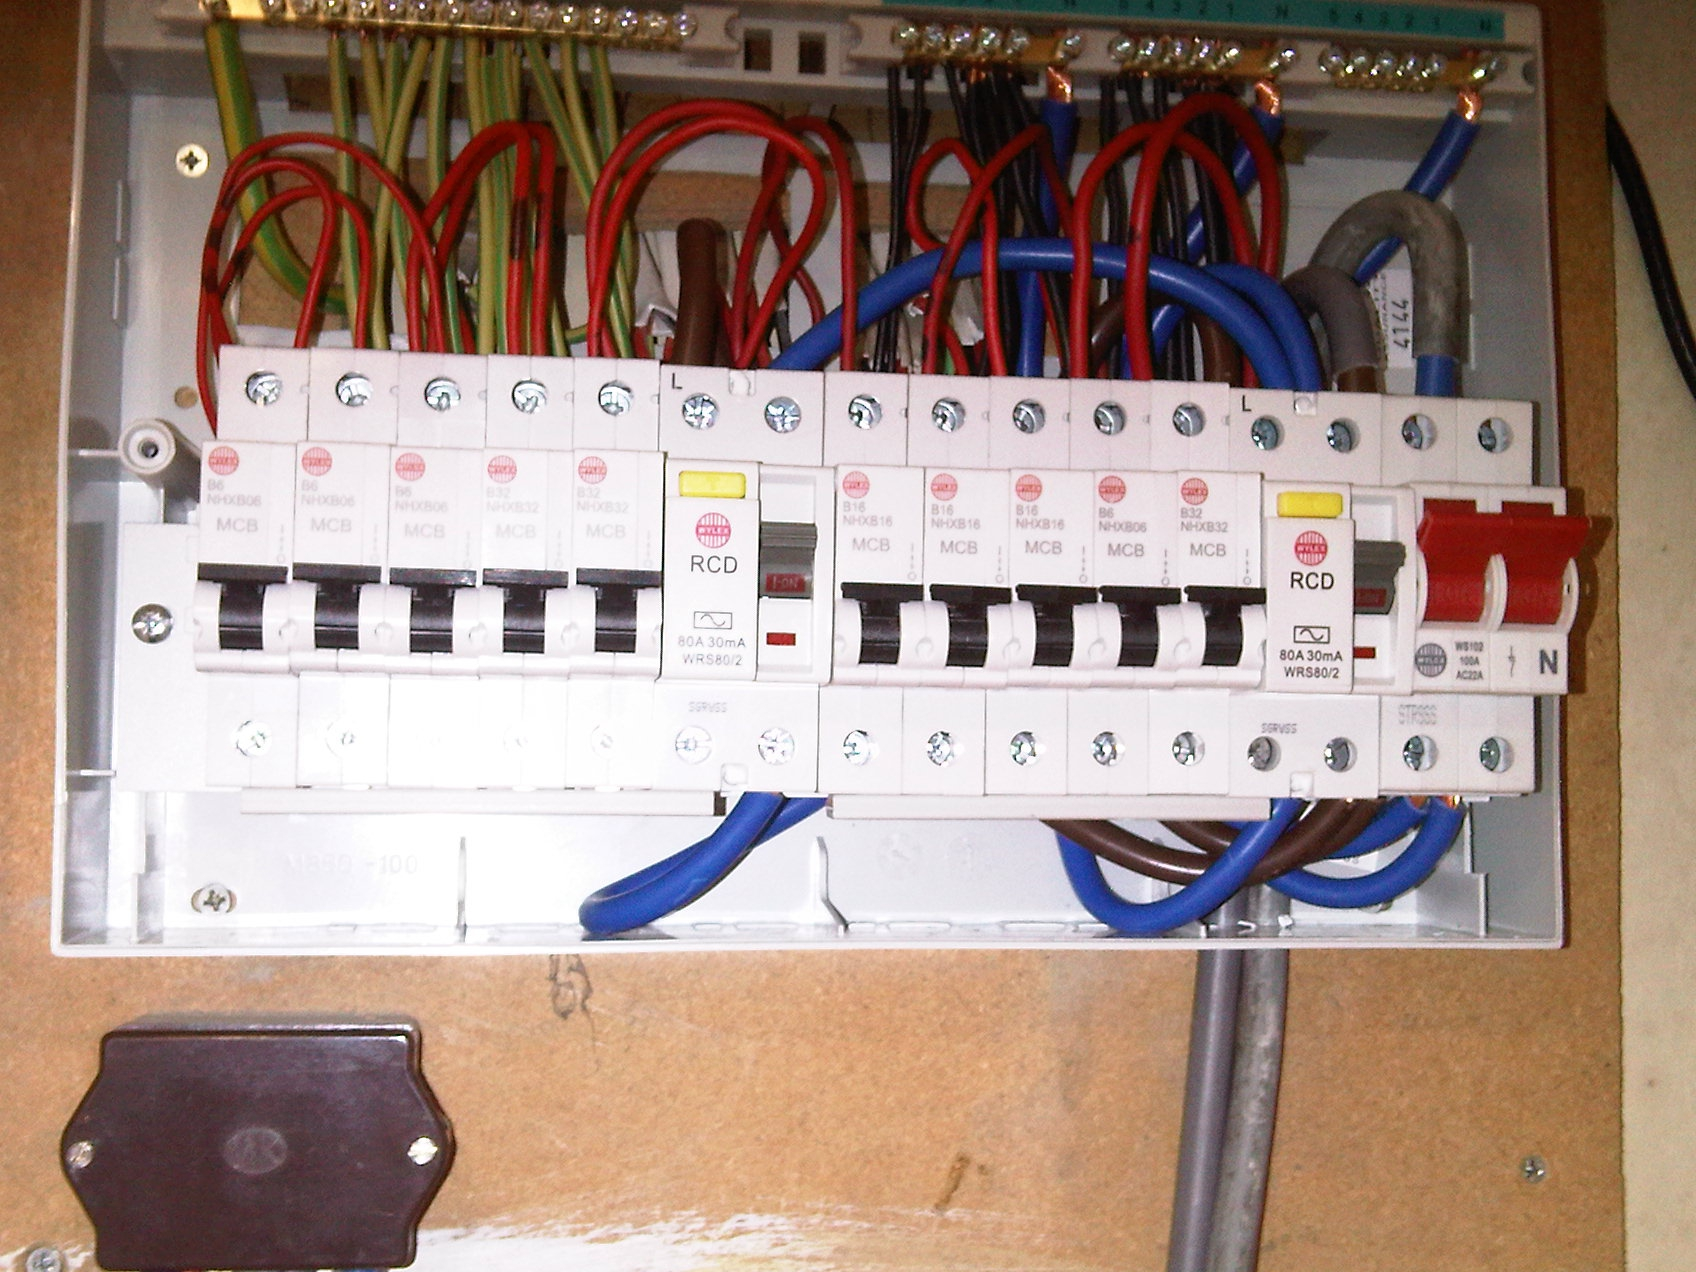 Fusebox 4 mk repair centre notices & news how to reset fuse box in apartment at edmiracle.co